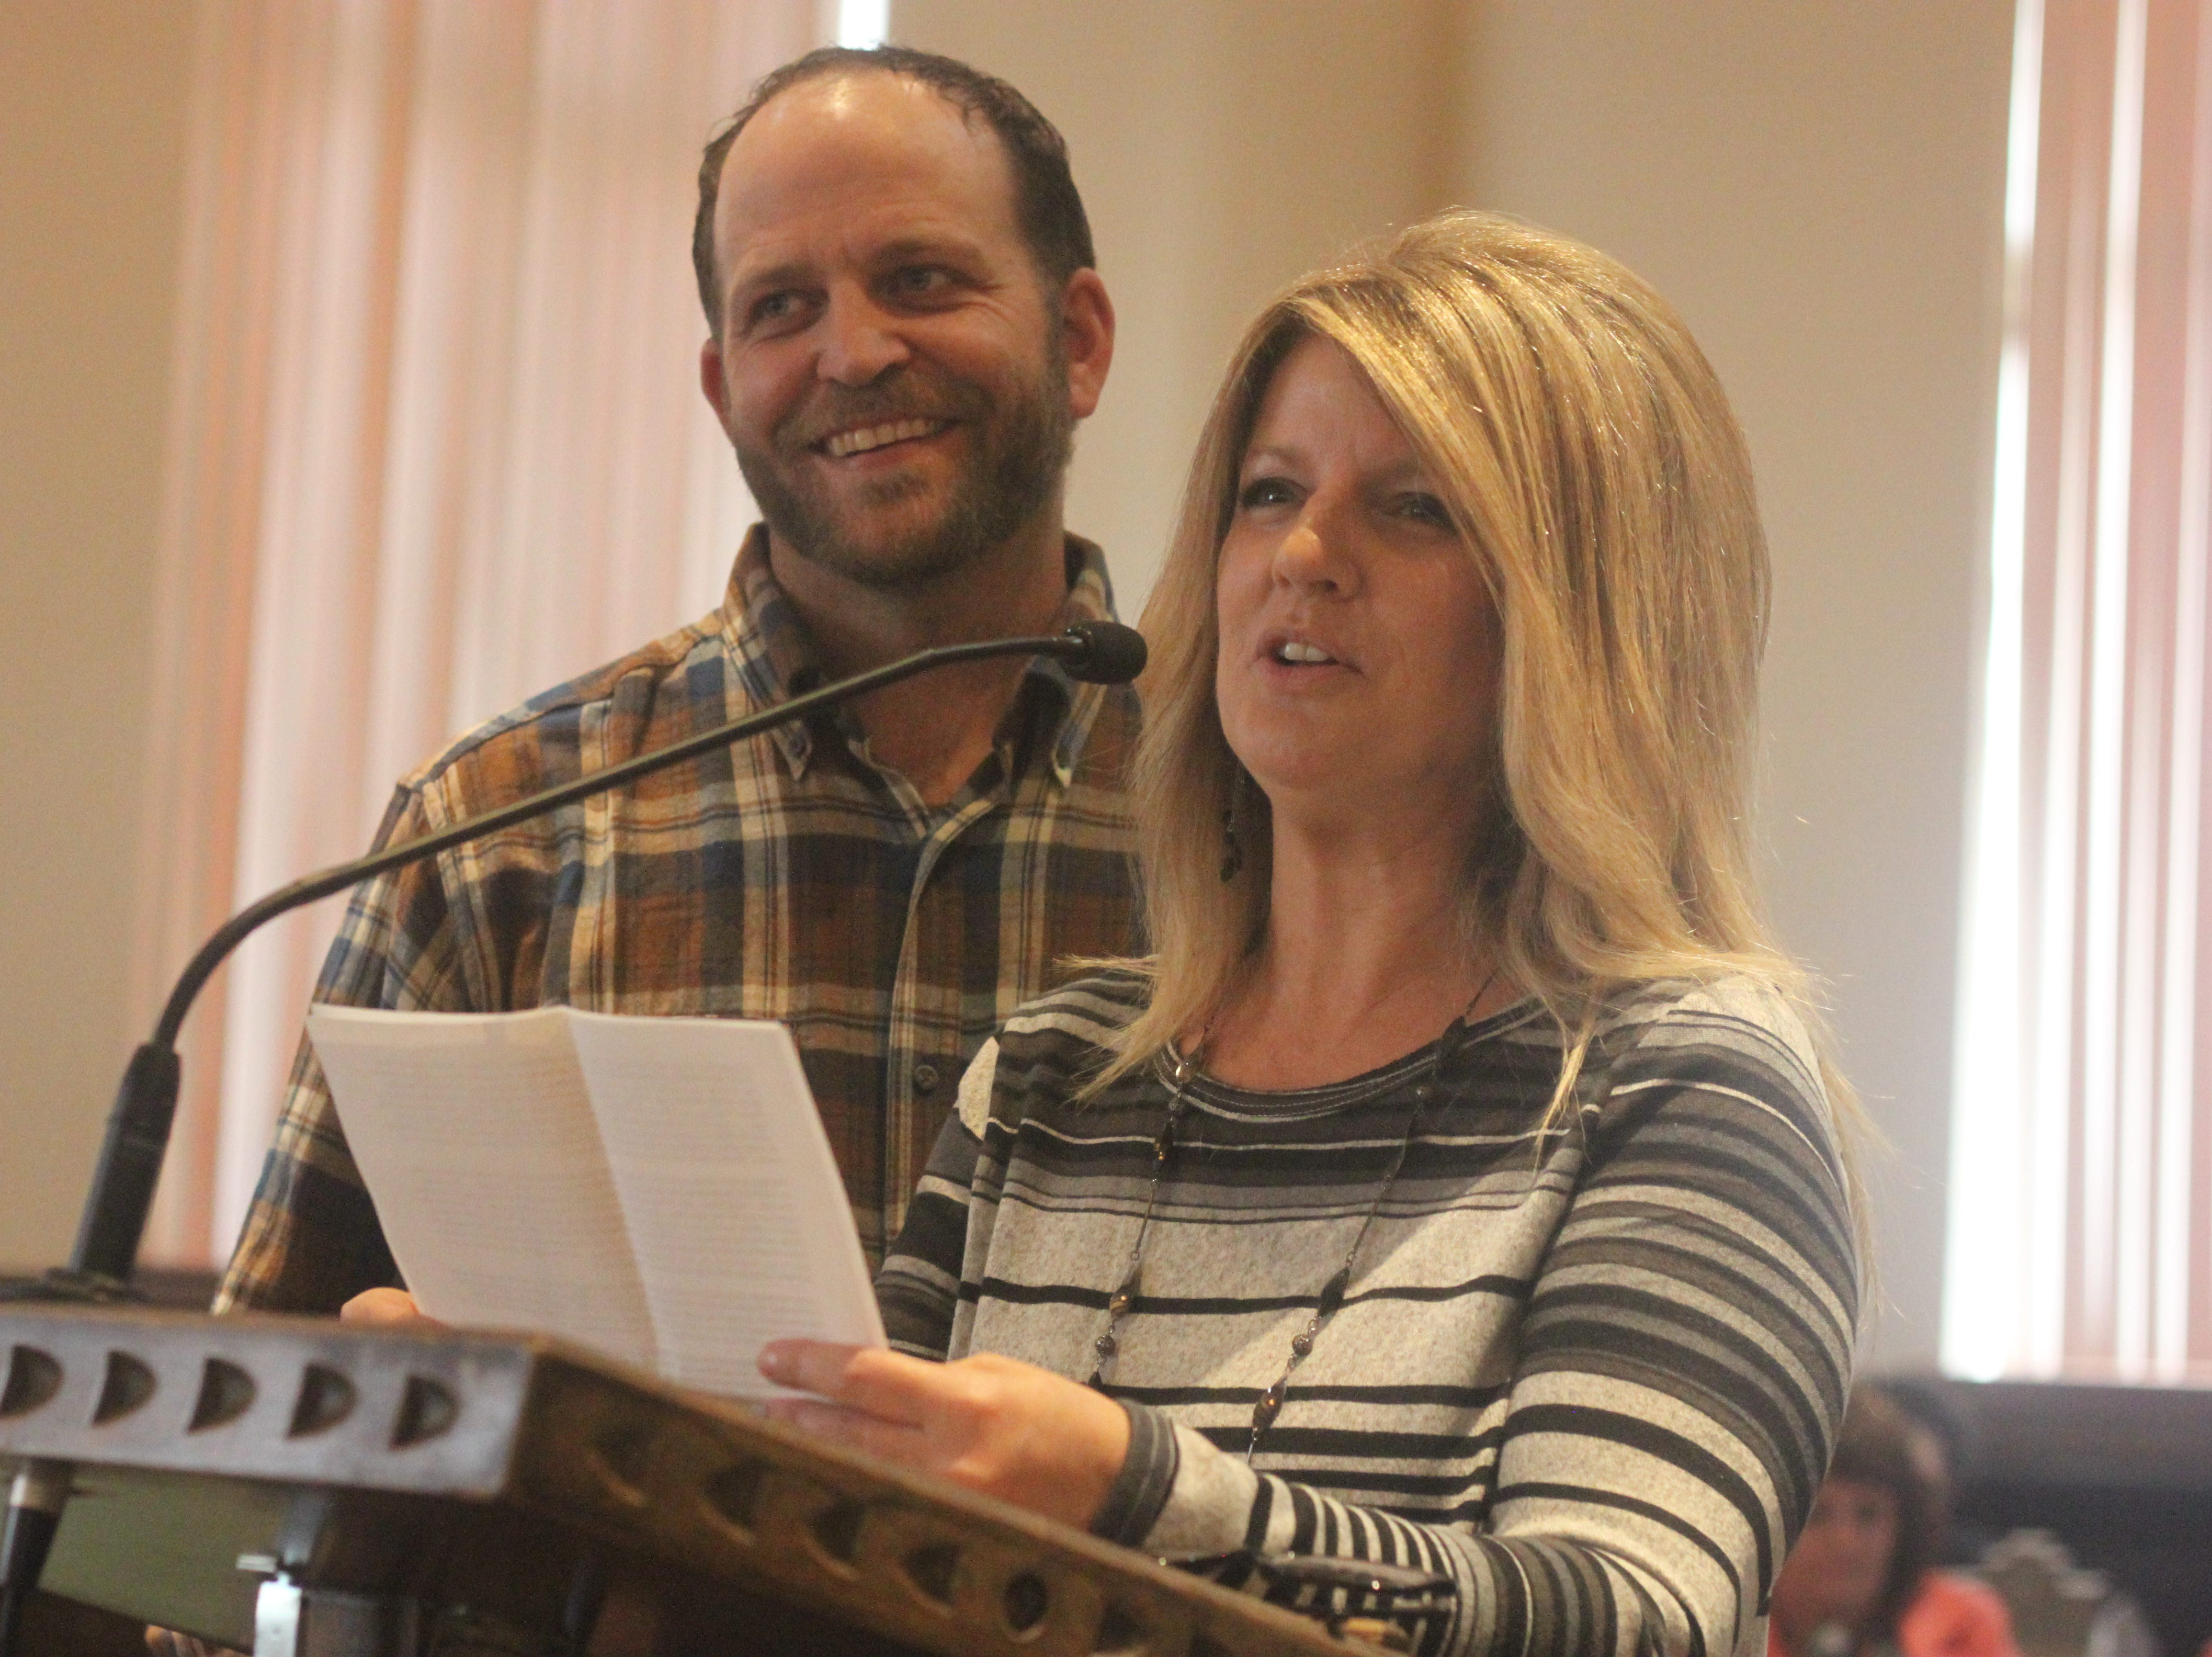 Adoptive parents JD Brown (left) and his wife Trisha Brown speak during Adoption Day, Nov. 9, 2018 in the Eddy County Courthouse.